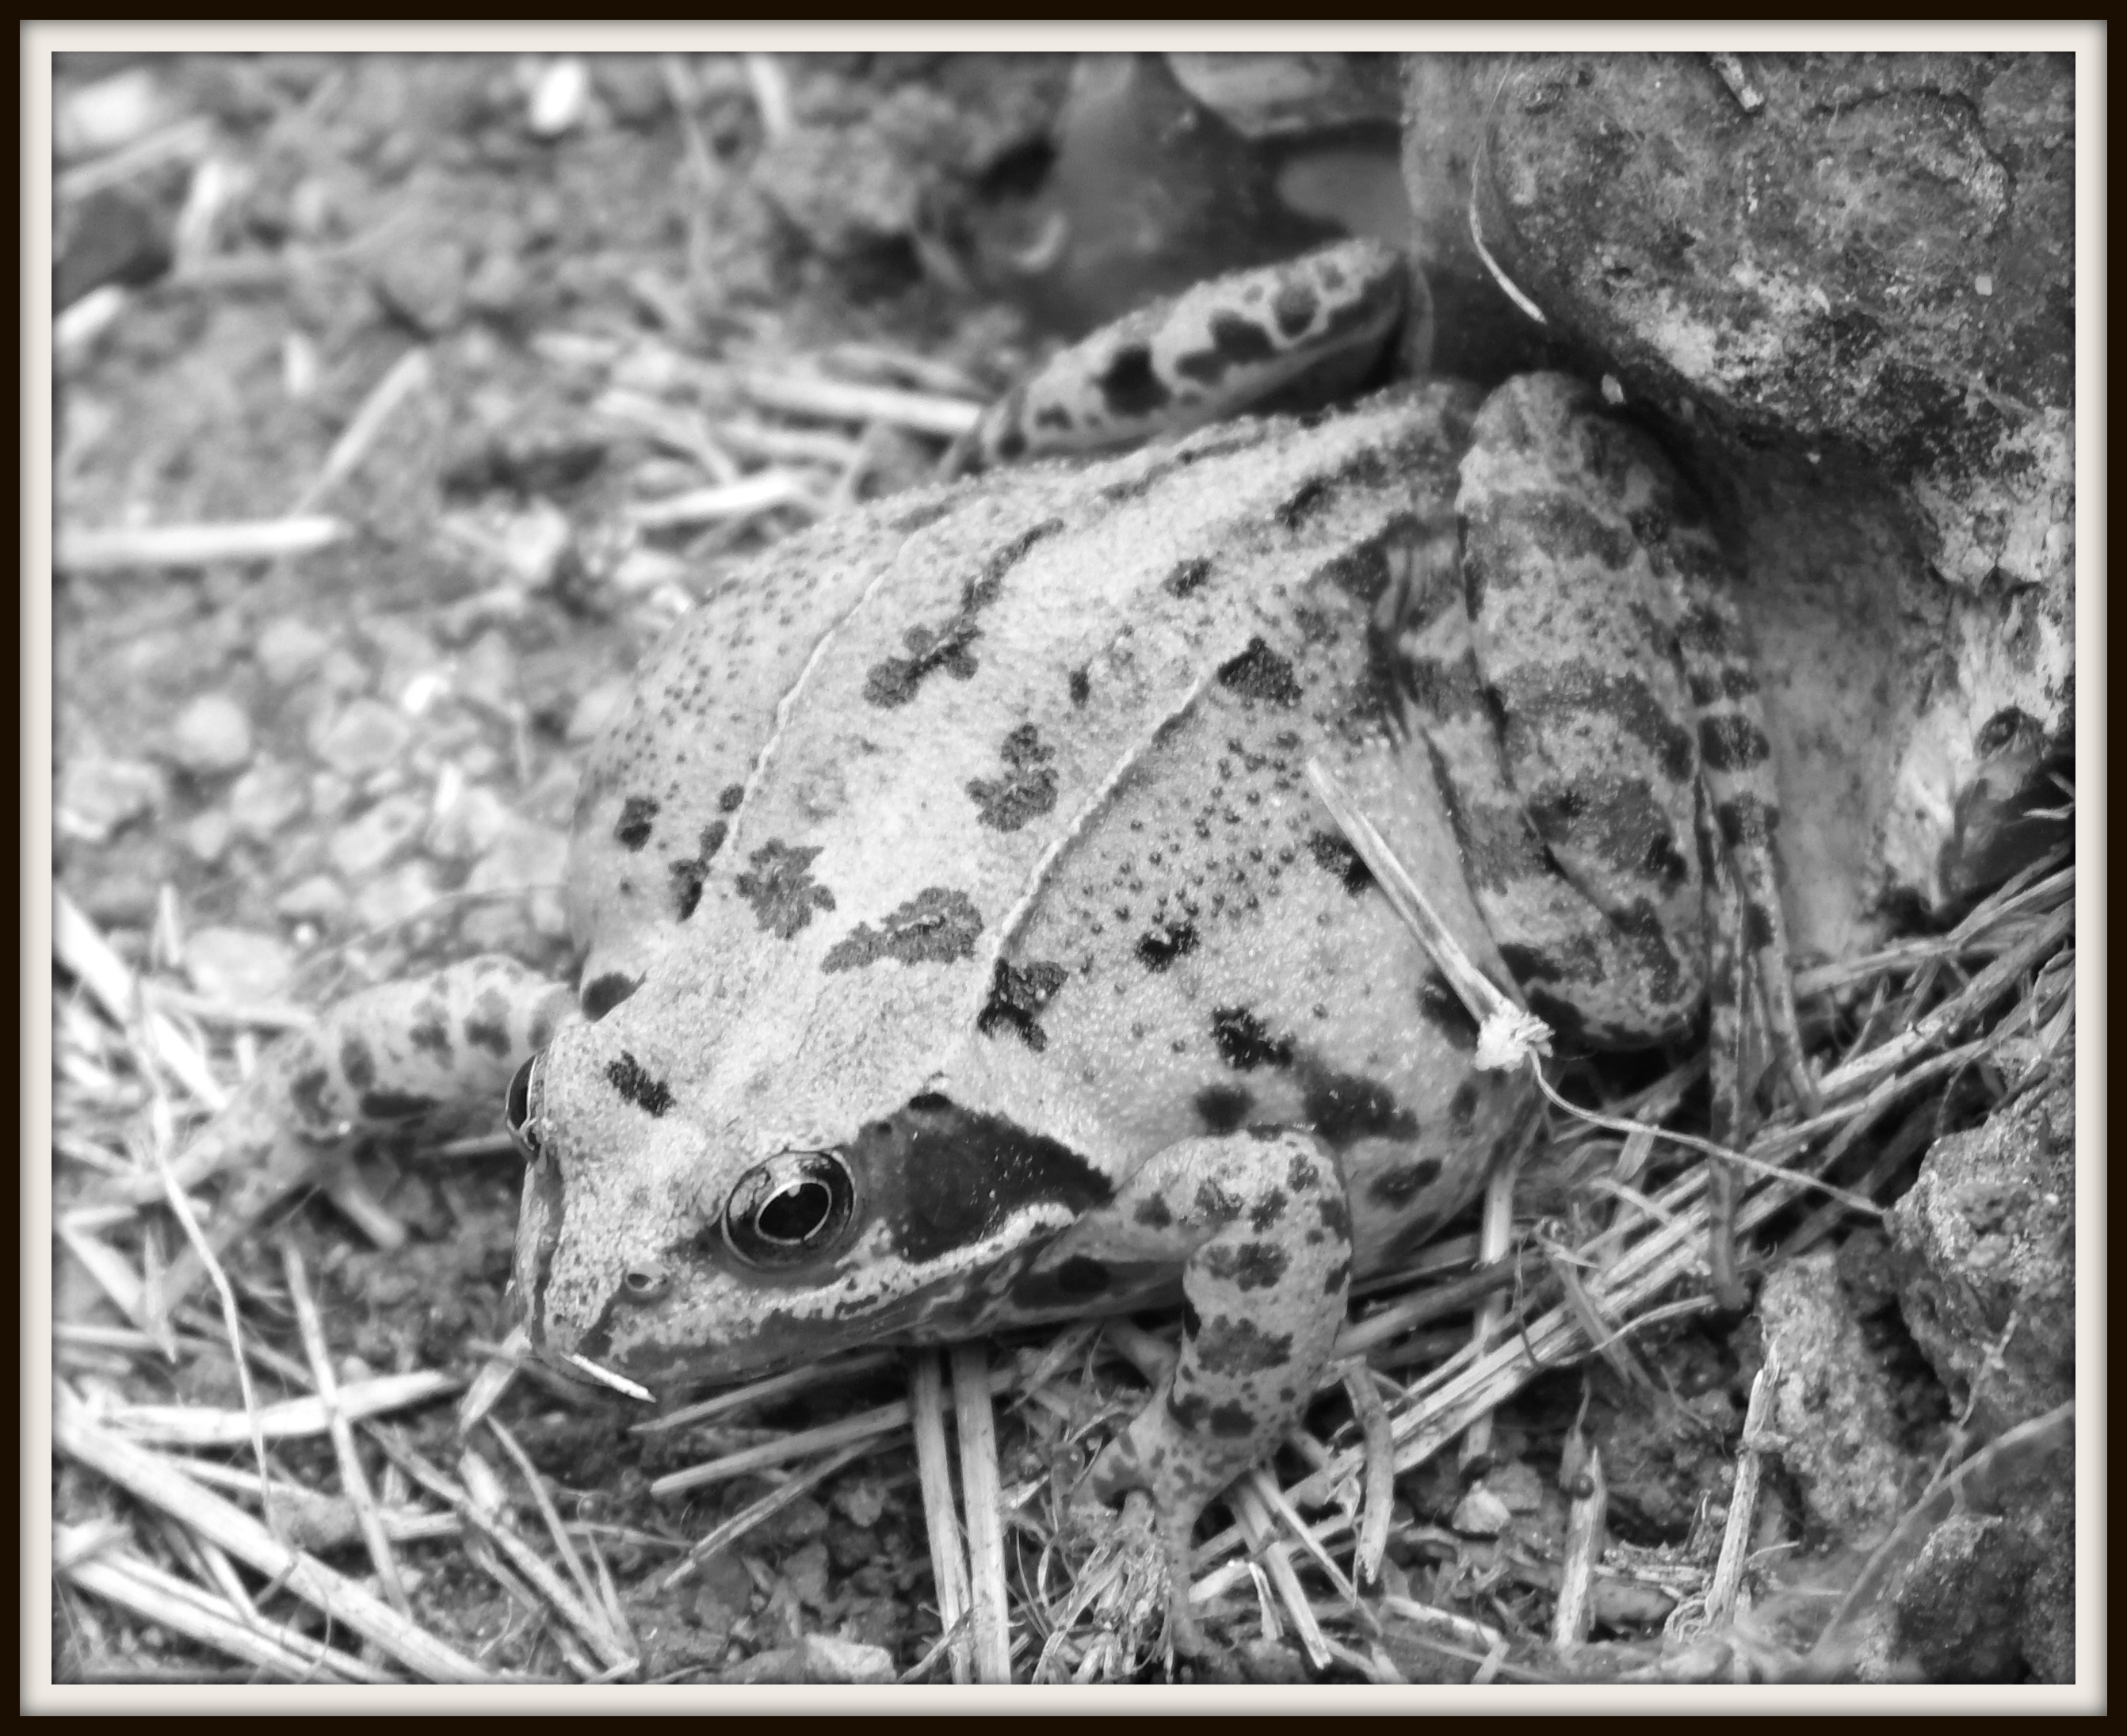 Frog in the wild (B&W photo project)